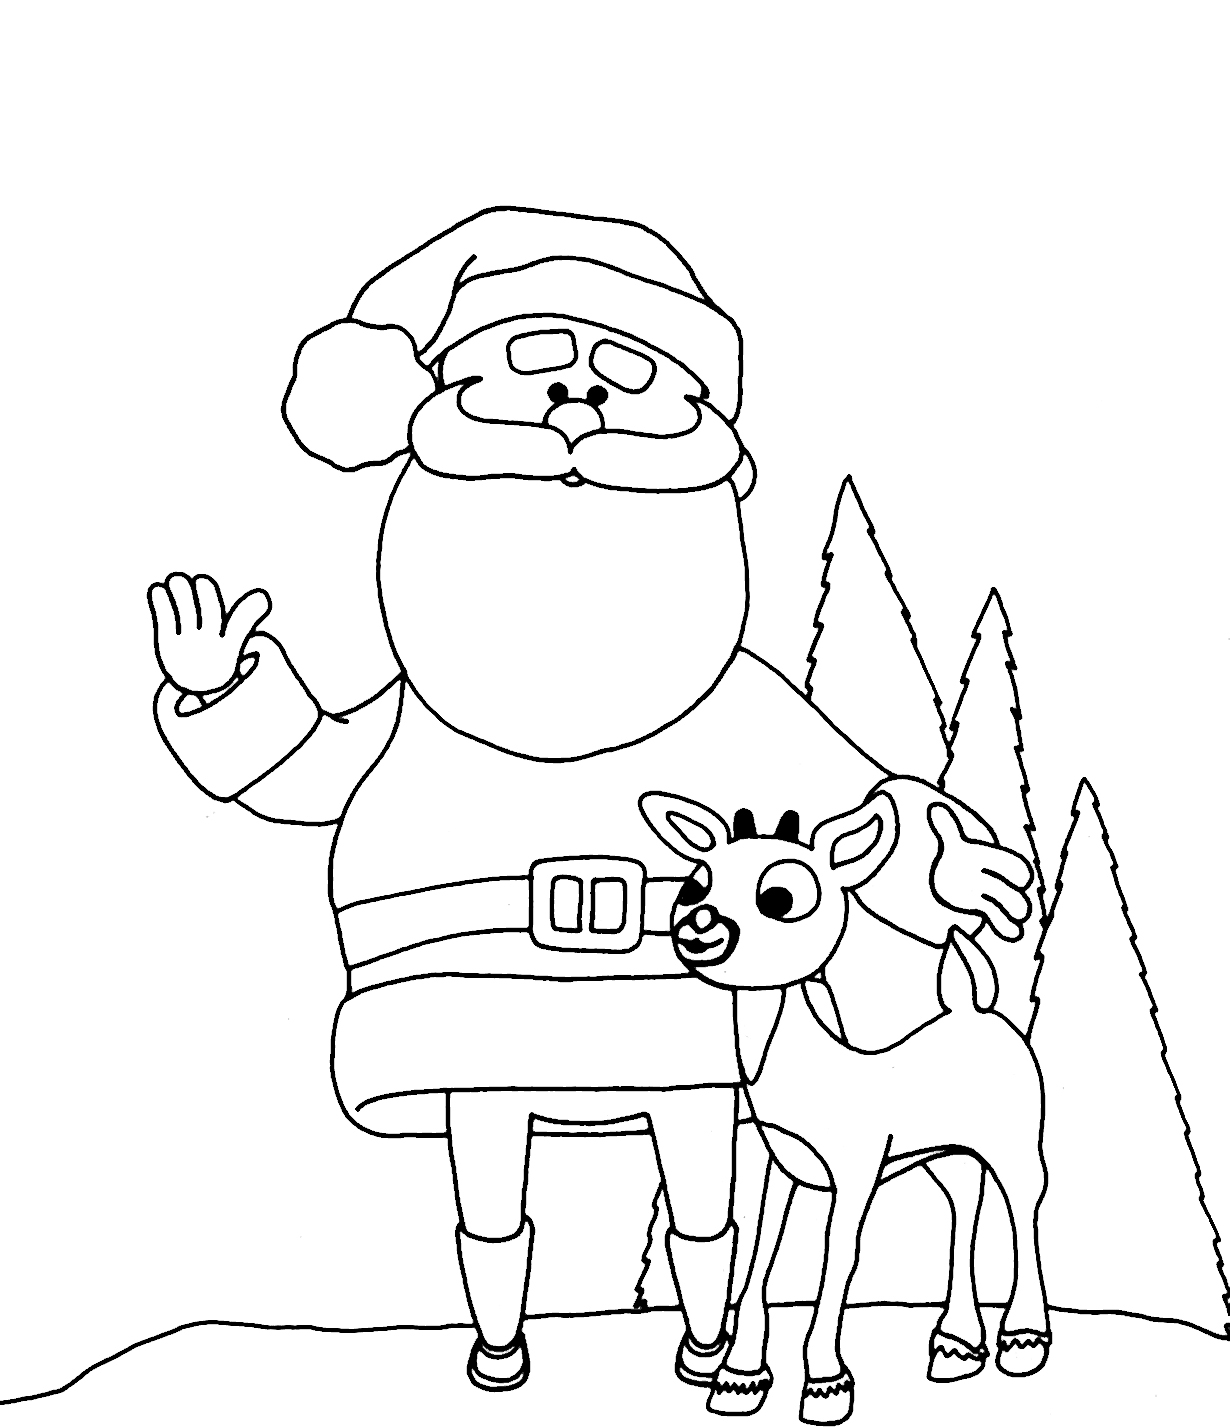 Santa Chimney Coloring Page With Free Printable Claus Pages For Kids